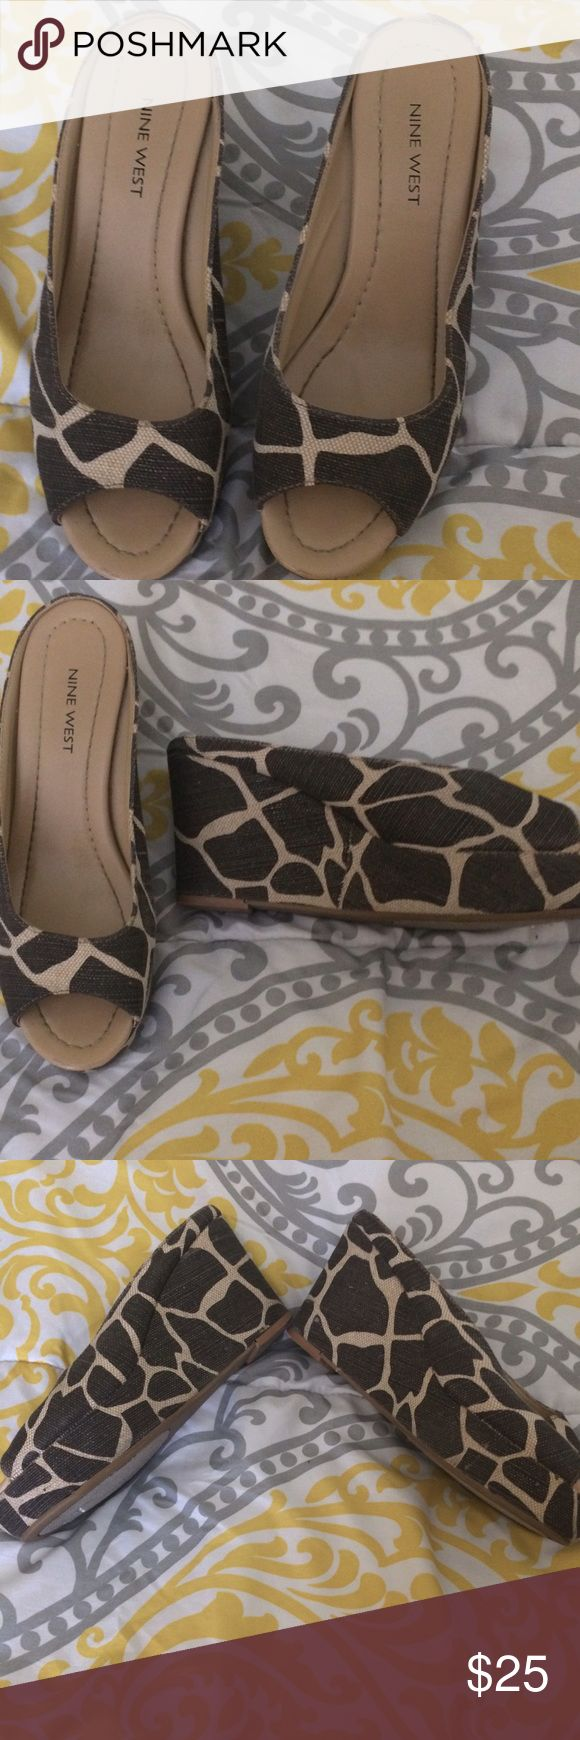 Nine West Dayside Animal Print platform mules Gently used  wedge open toe measures 3 1/4 inch he and 9 inches toe to heel on soles Nine West Shoes Platforms